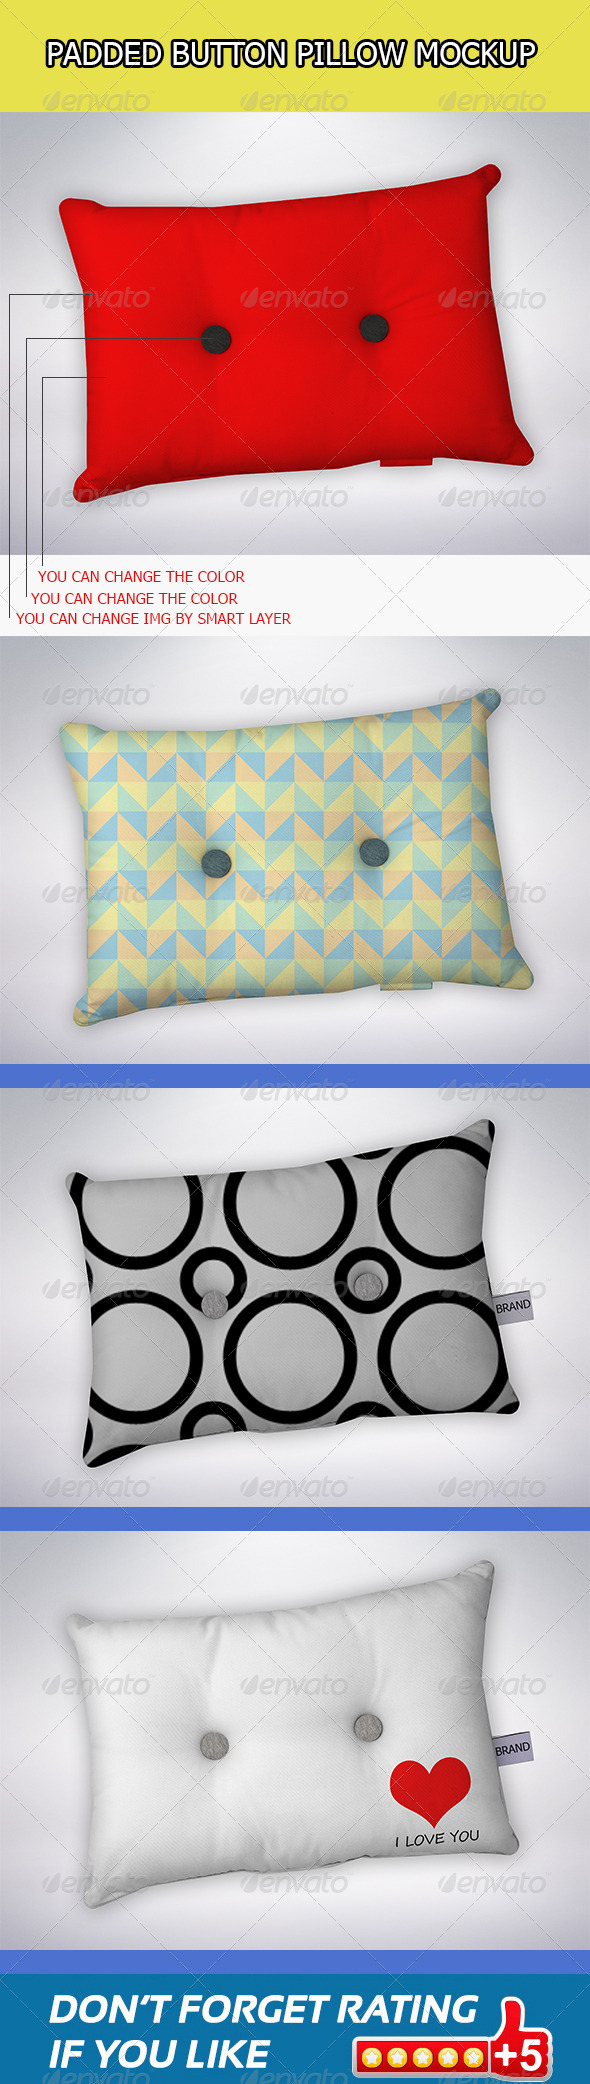 Padded Button Pillow Mock-Ups